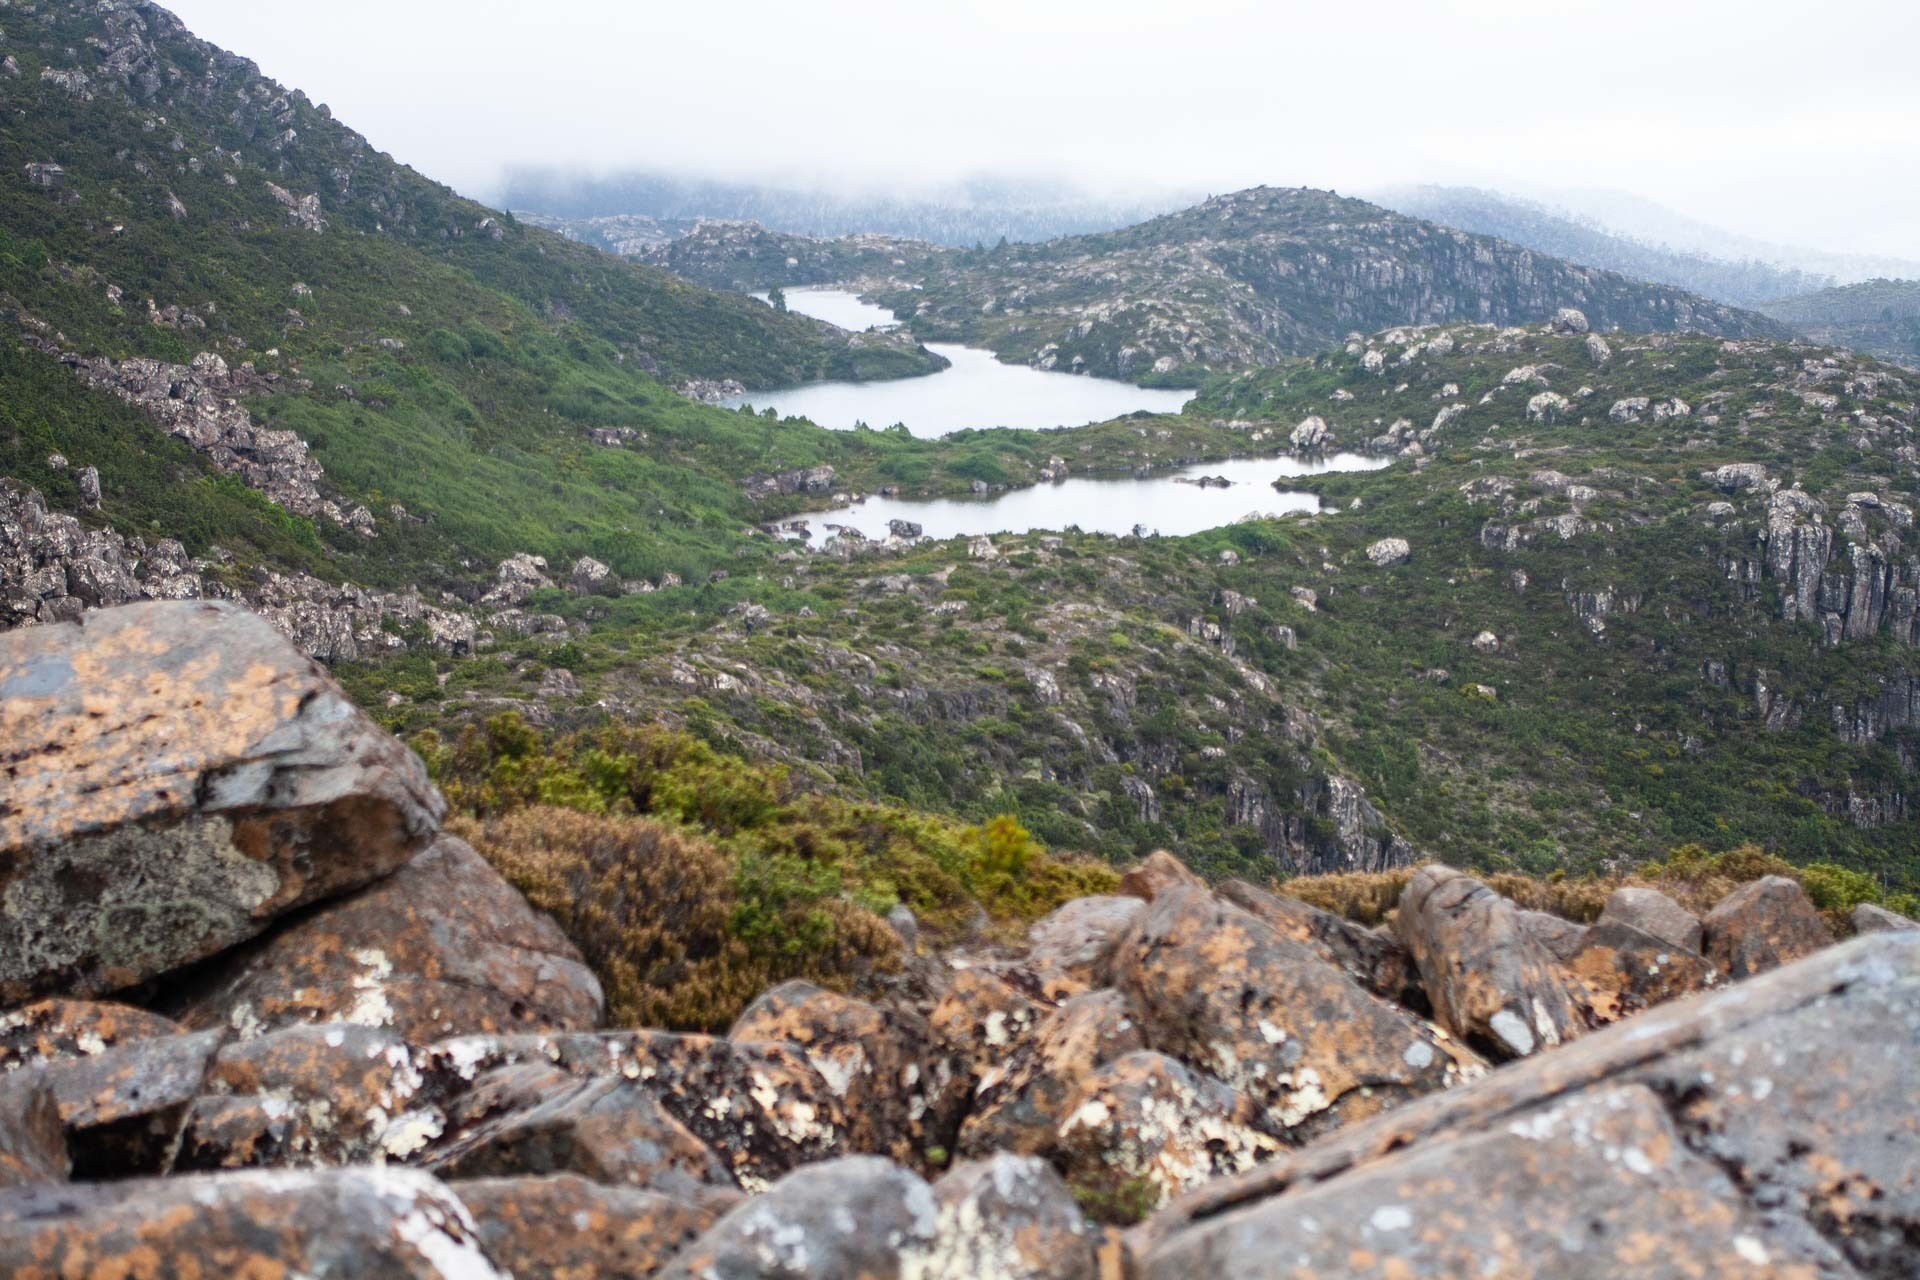 Approaching the first Tarn, The Tarn Shelf – Tasmania's Best Day Hike You've Never Heard Of, casey fung, tarn shelf, mt field national park, tasmania, lake, alpine, the tarn shelf